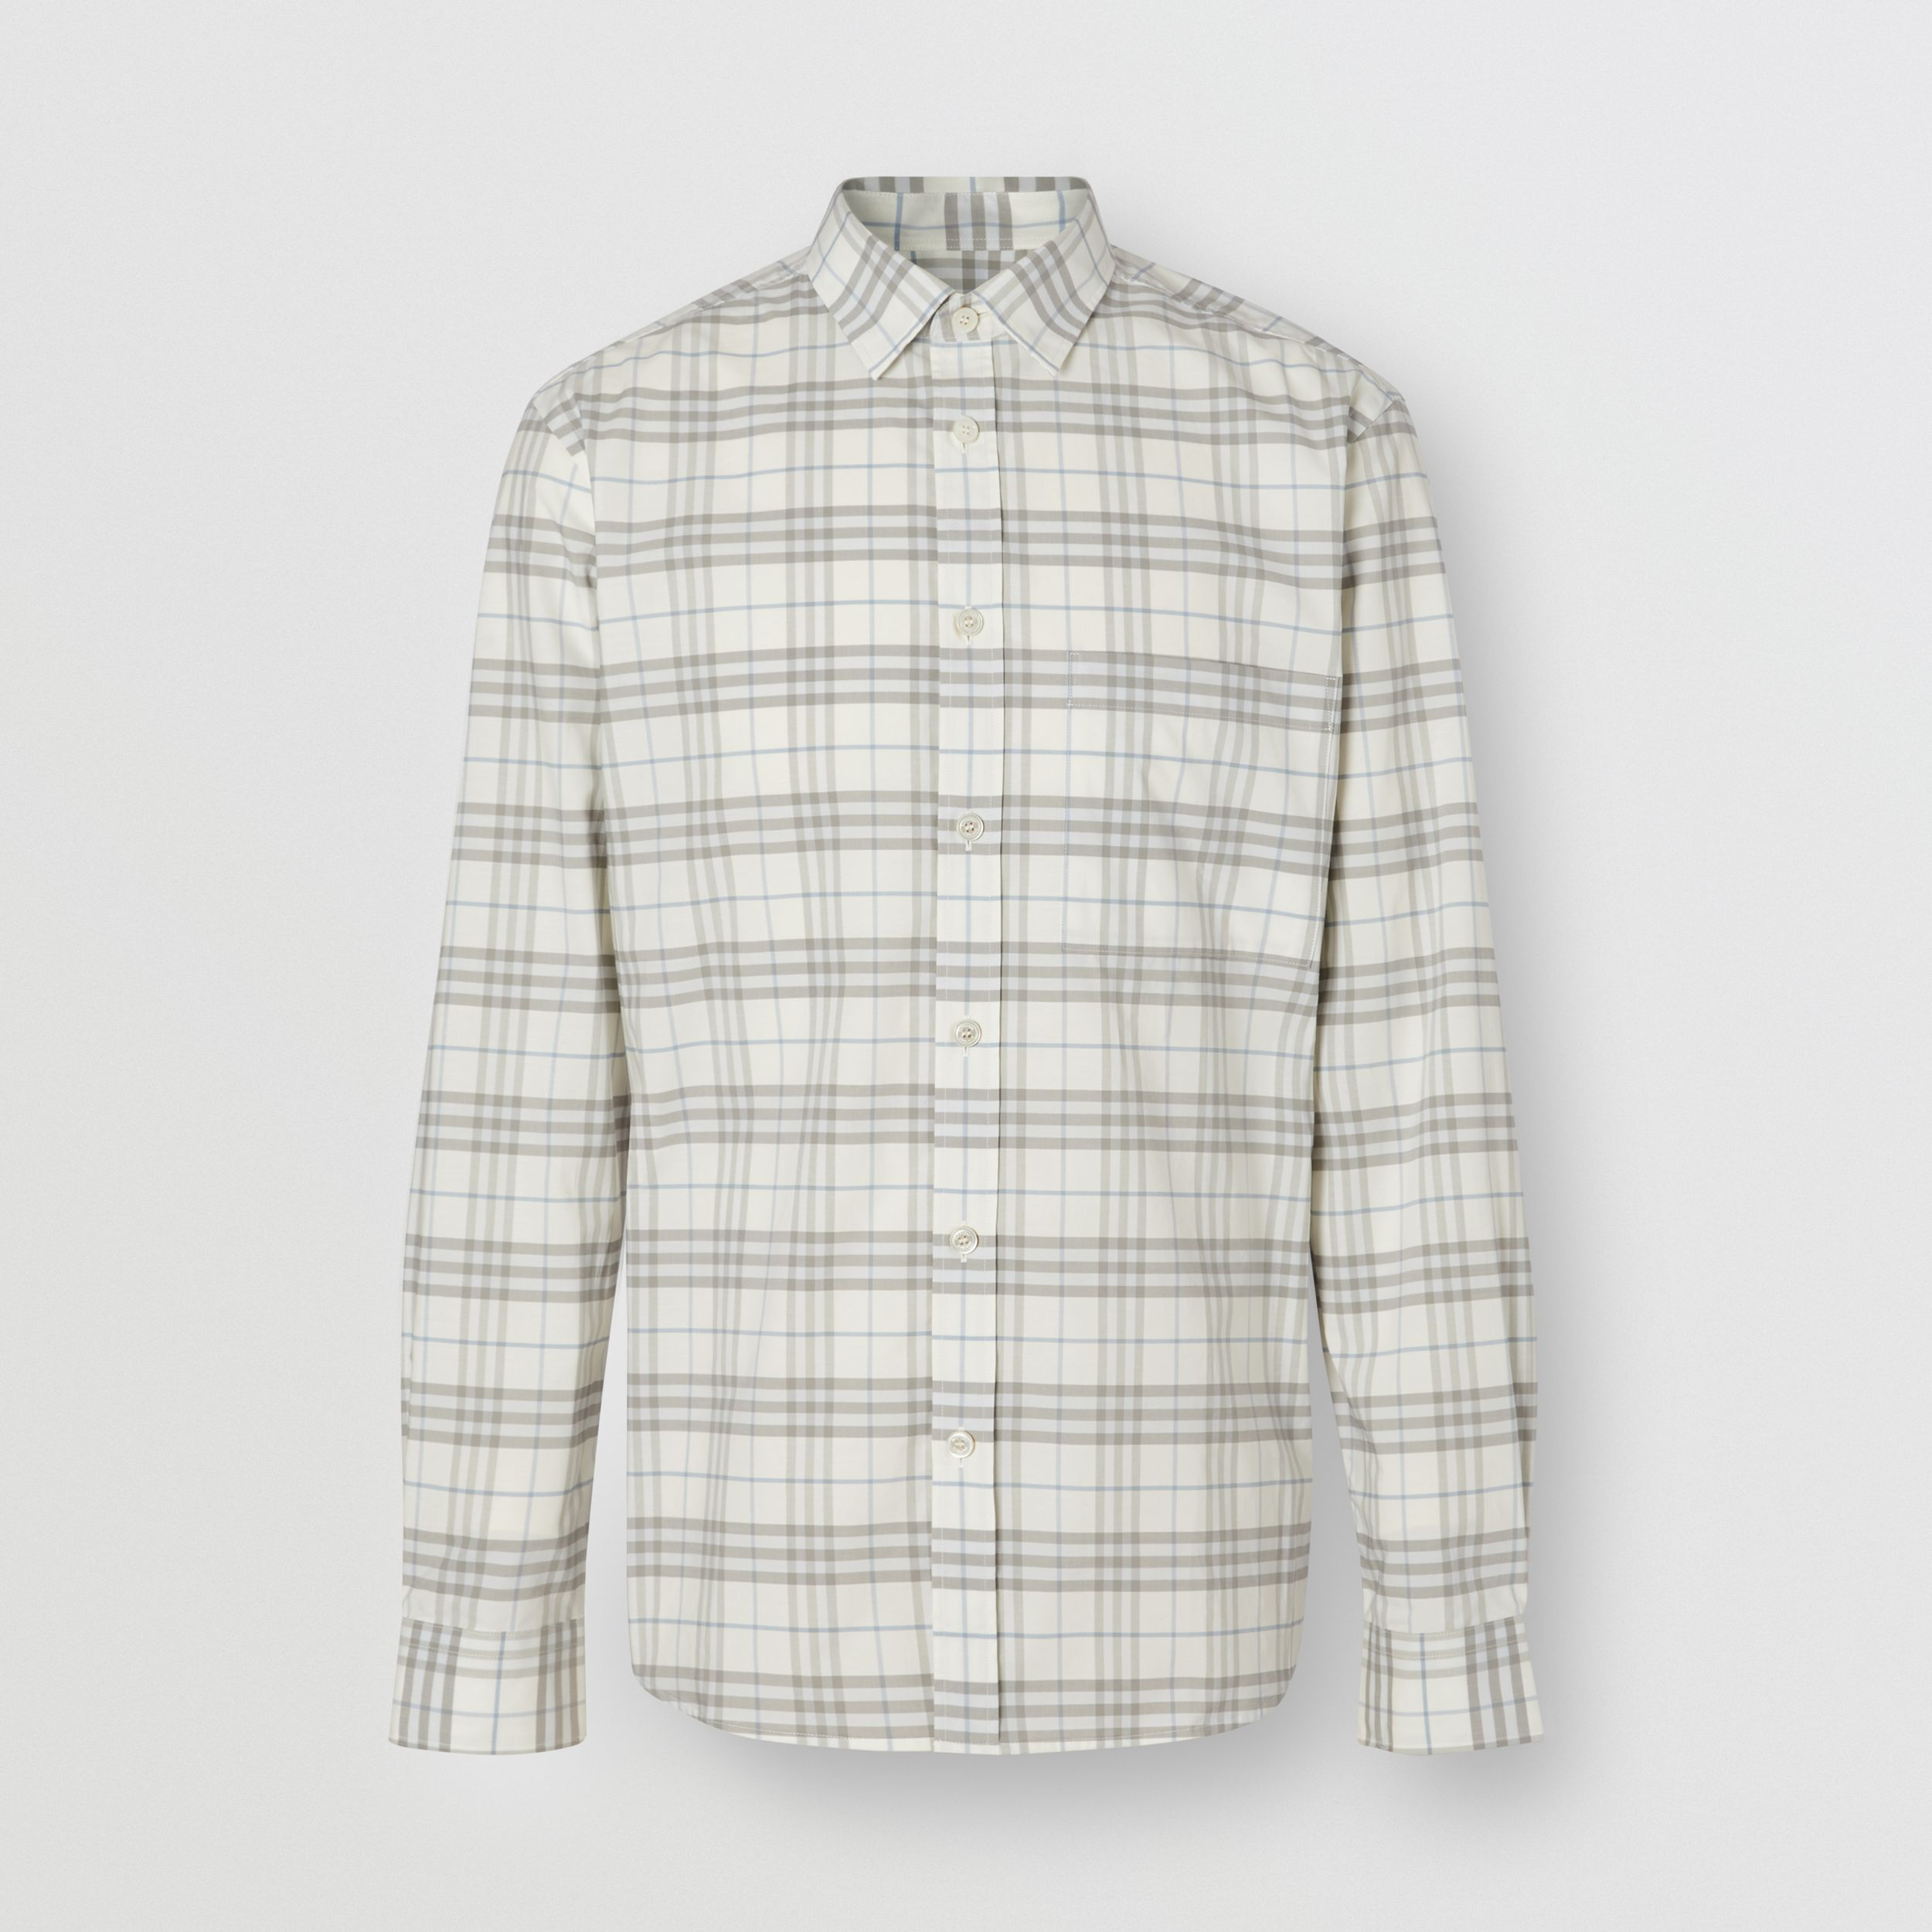 Small Scale Check Stretch Cotton Shirt in Parchment - Men | Burberry - 4